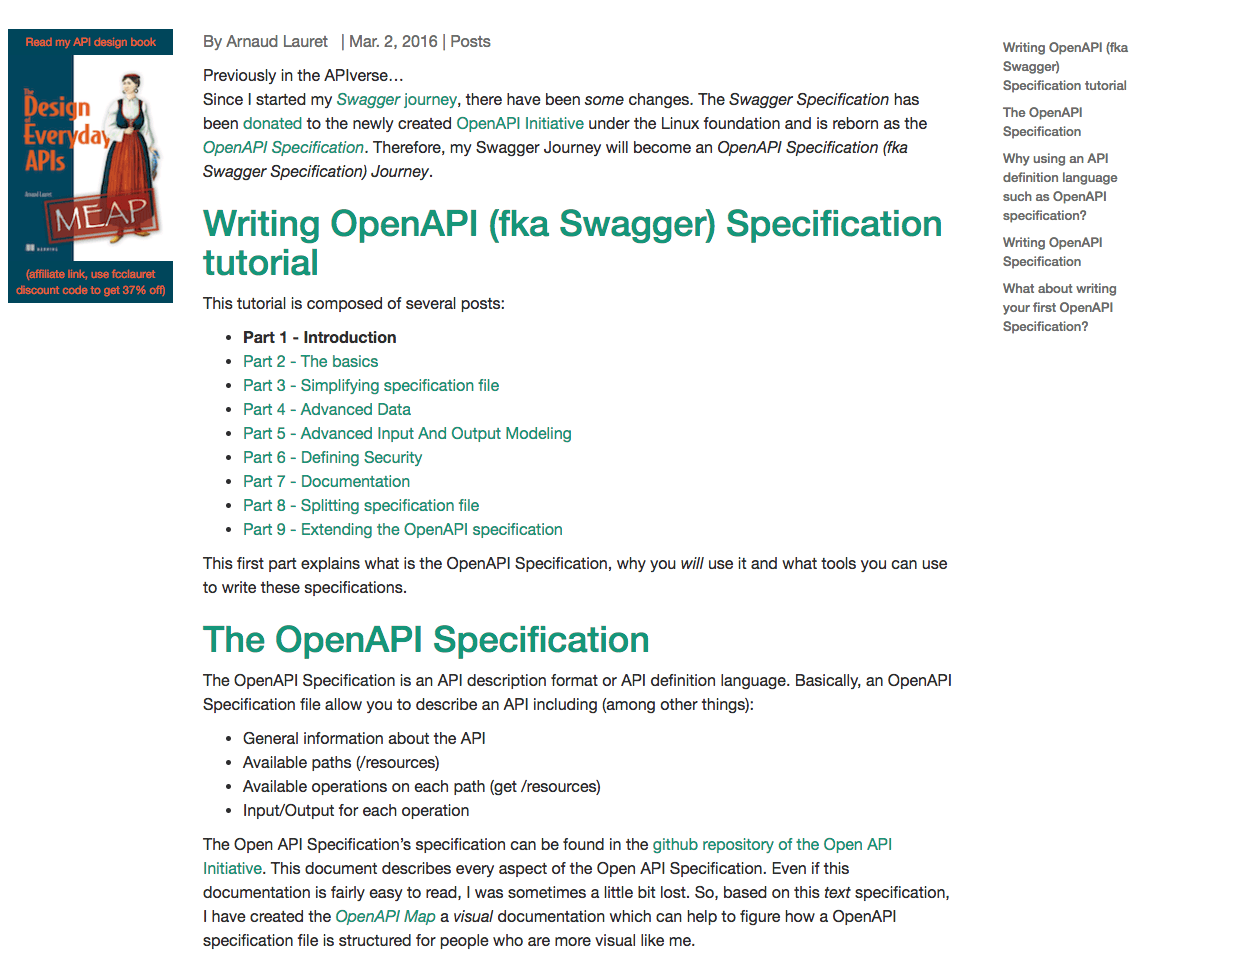 Writing an OpenAPI (Swagger) Specification Tutorial - API